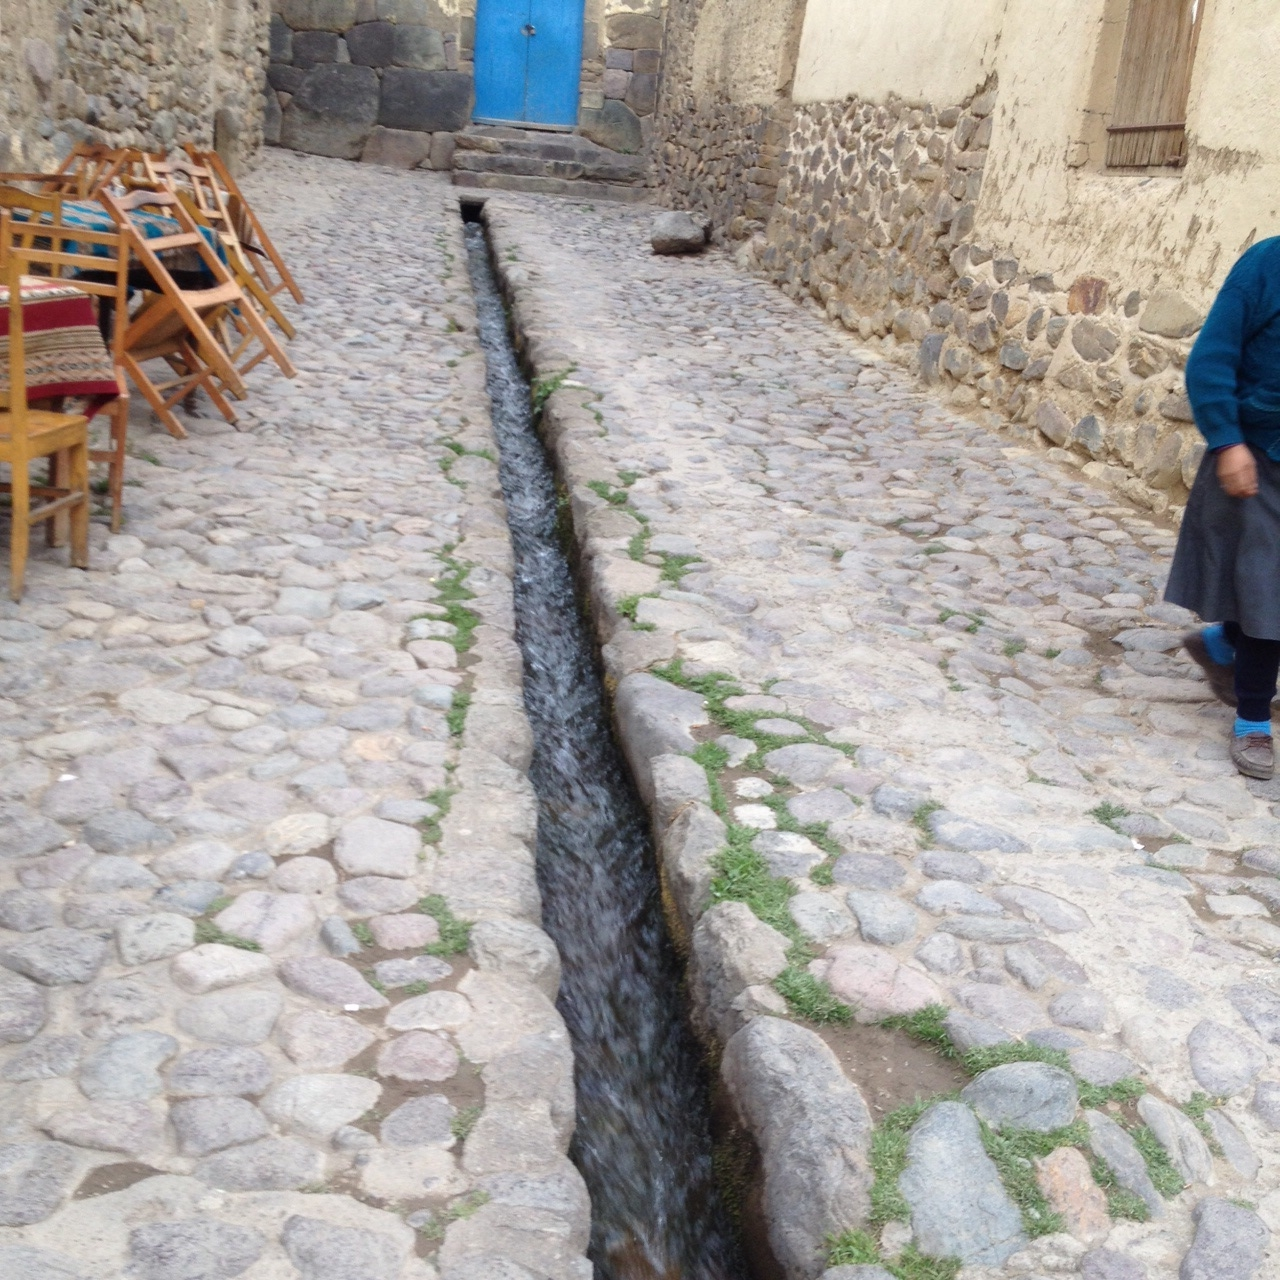 Incan aqueduct still effective.